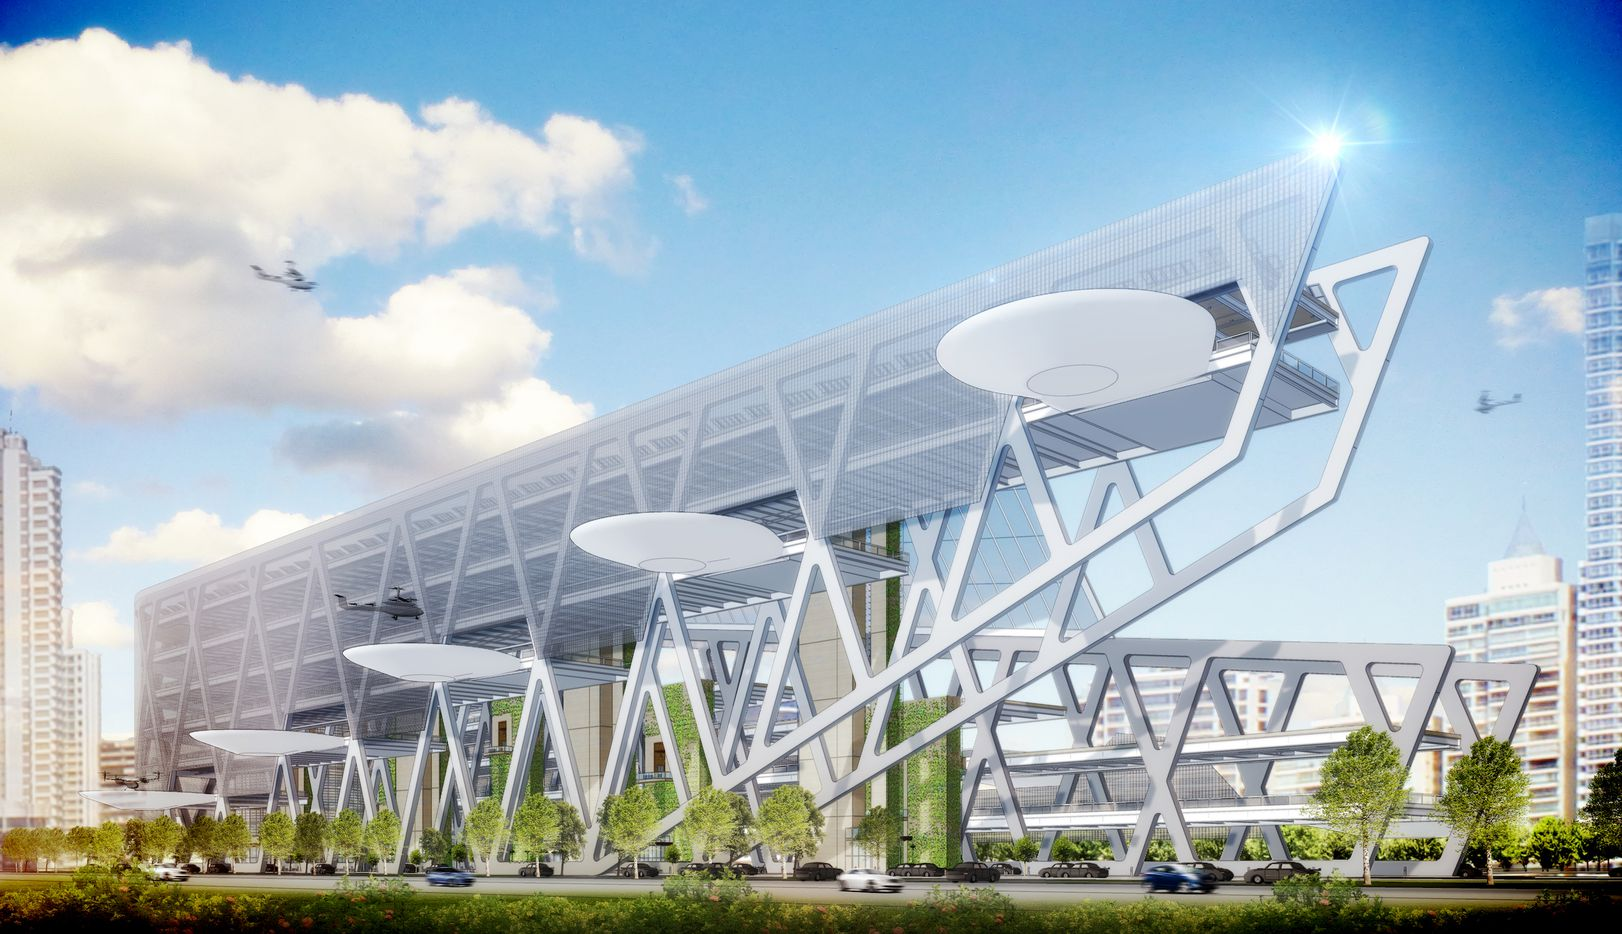 BOKA Powell's design for the Uber Elevate terminal includes wind turbines and photo cells to generate electricity.